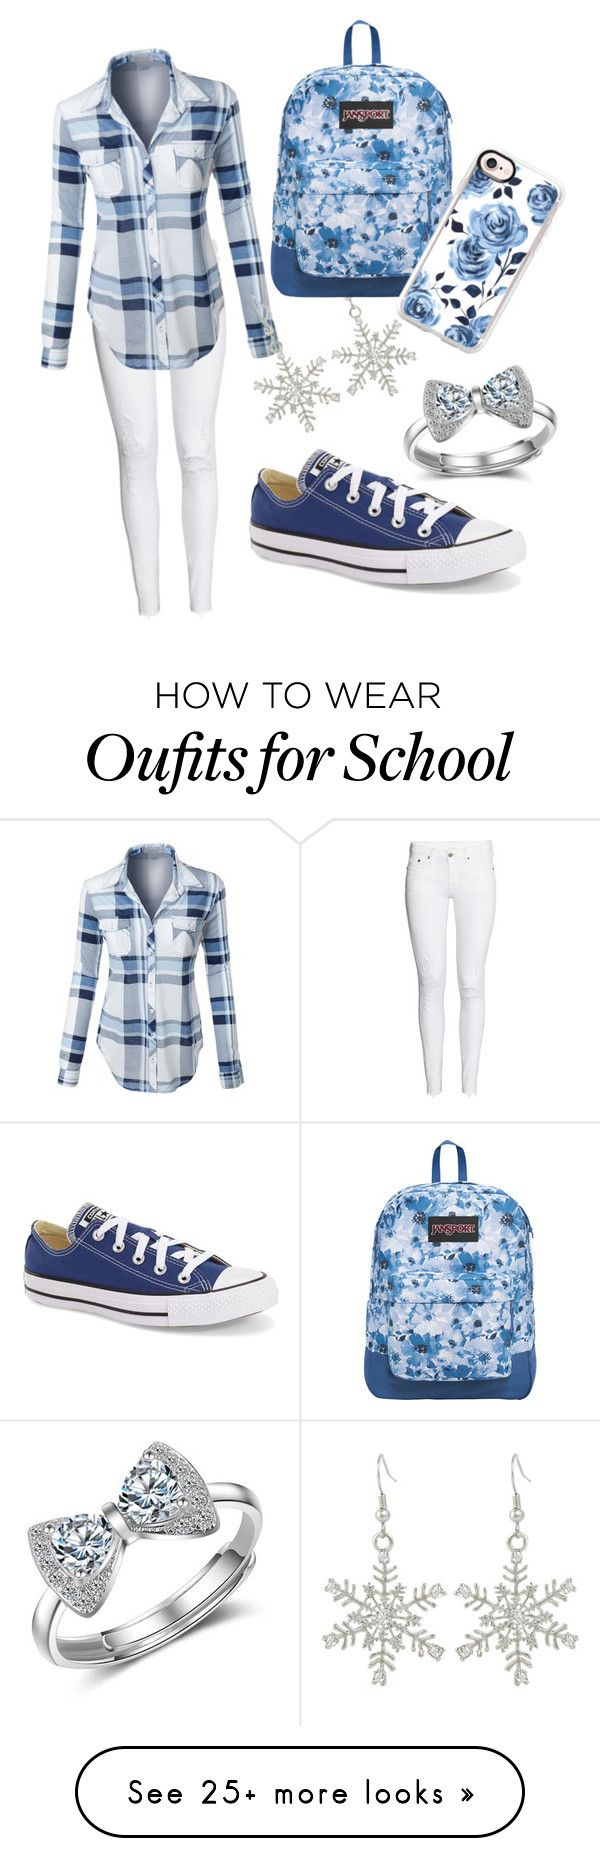 """Blue day at school"" by luisaos on Polyvore featuring H&M, Converse, LE3NO, JanSport and Casetify"